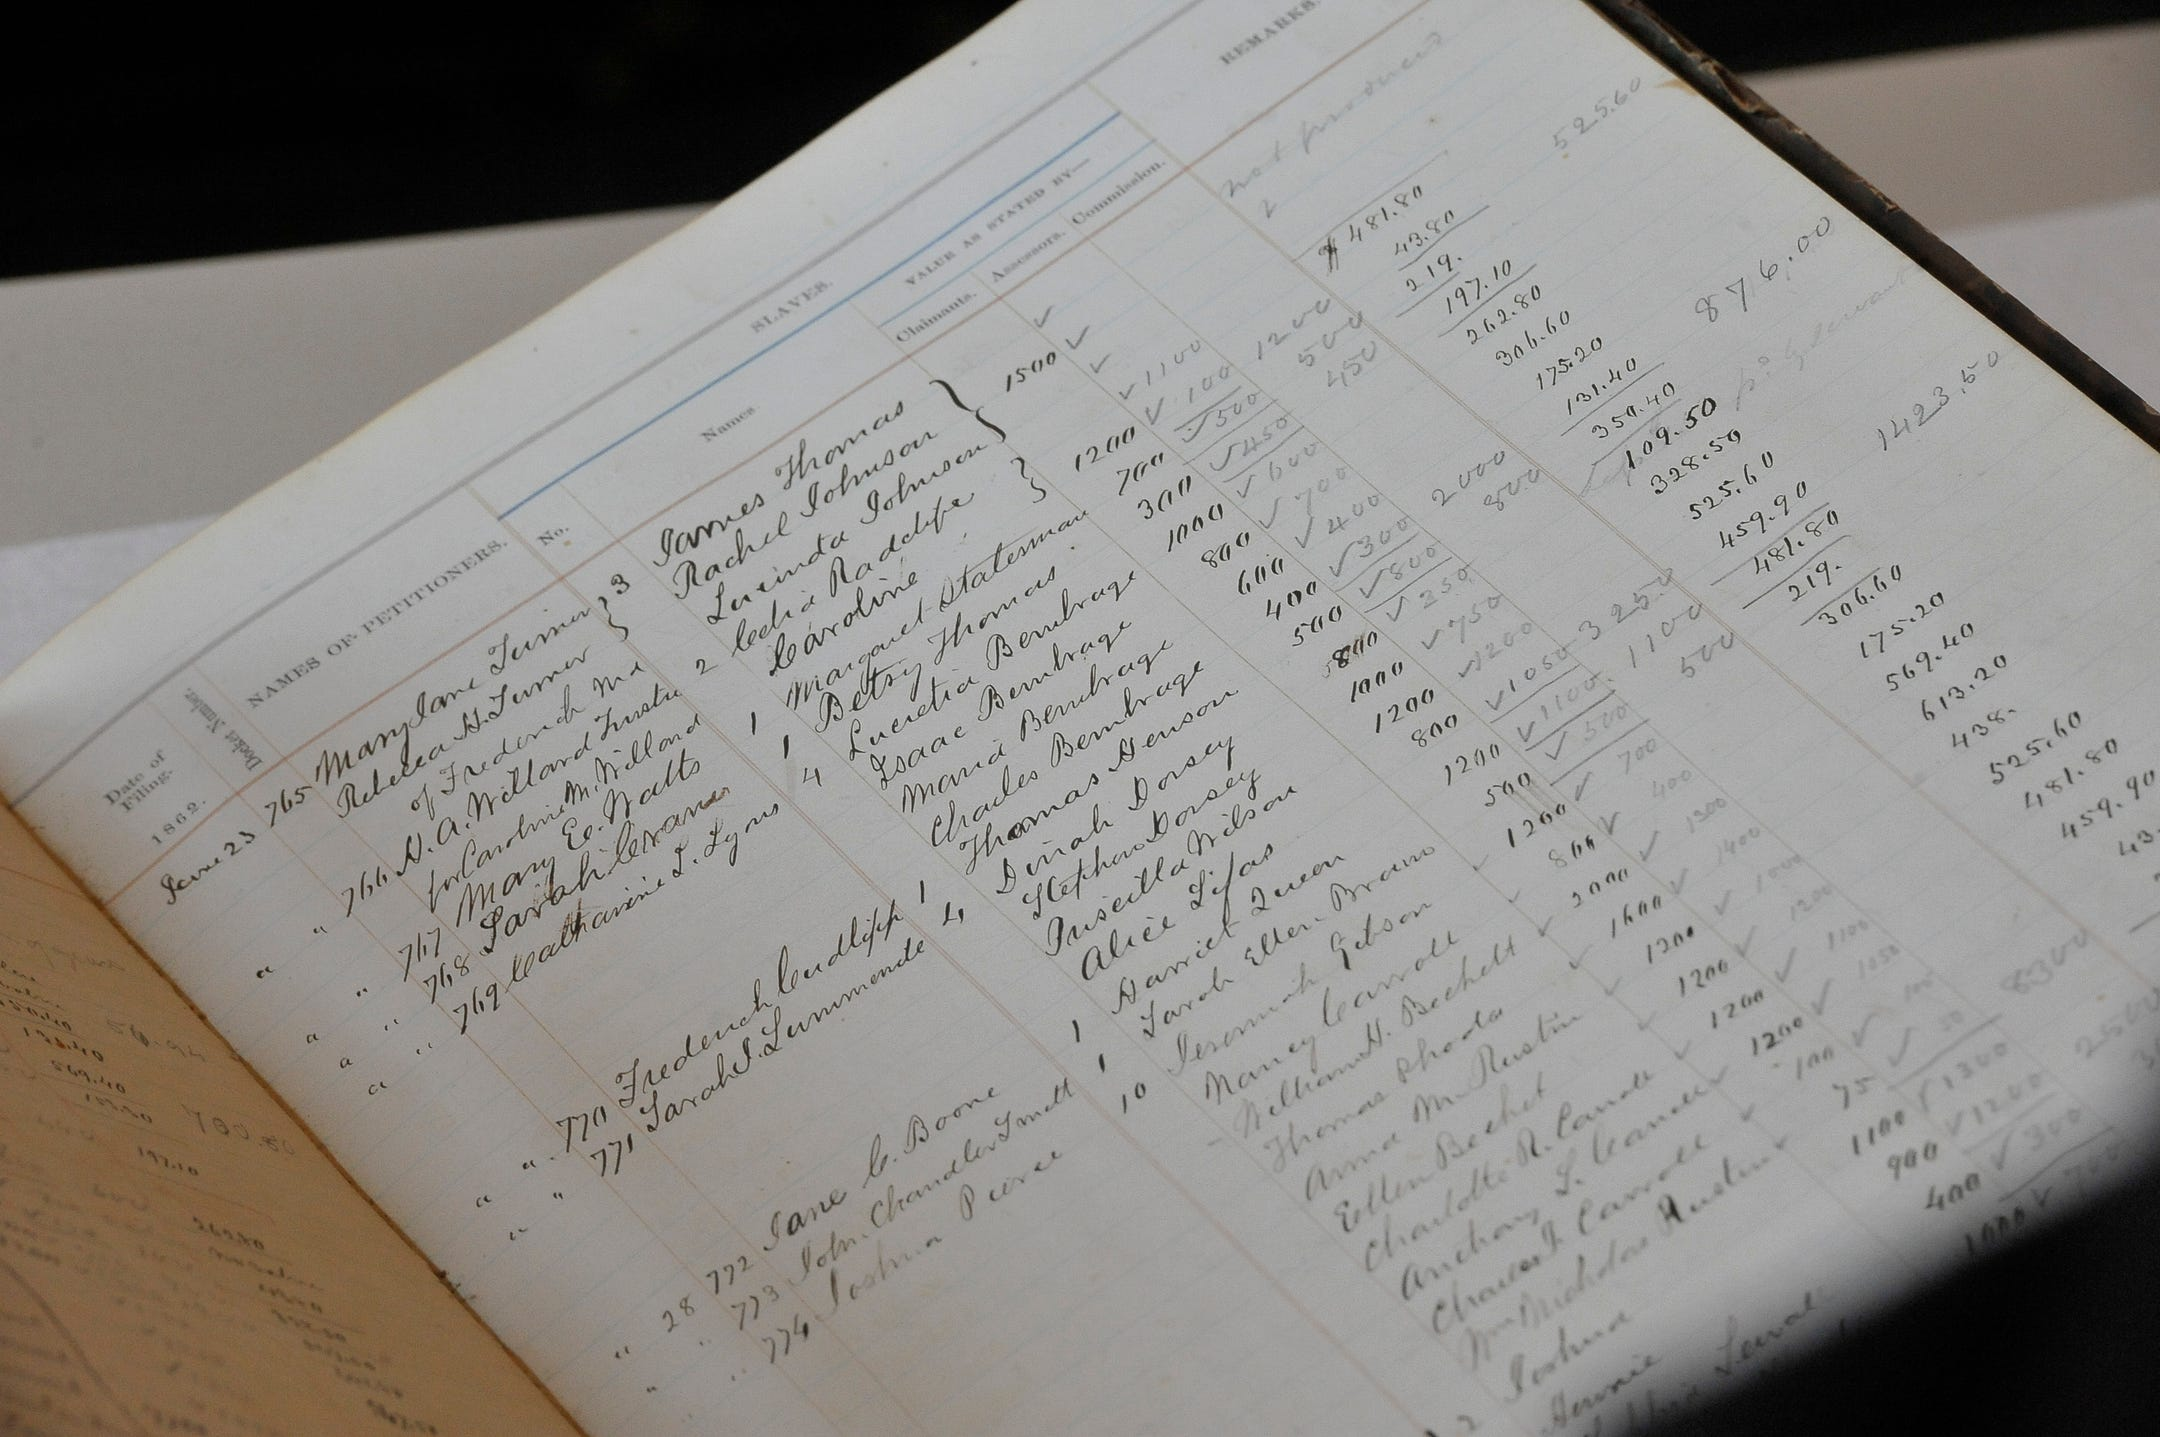 Tips to trace your family history beyond DNA tests